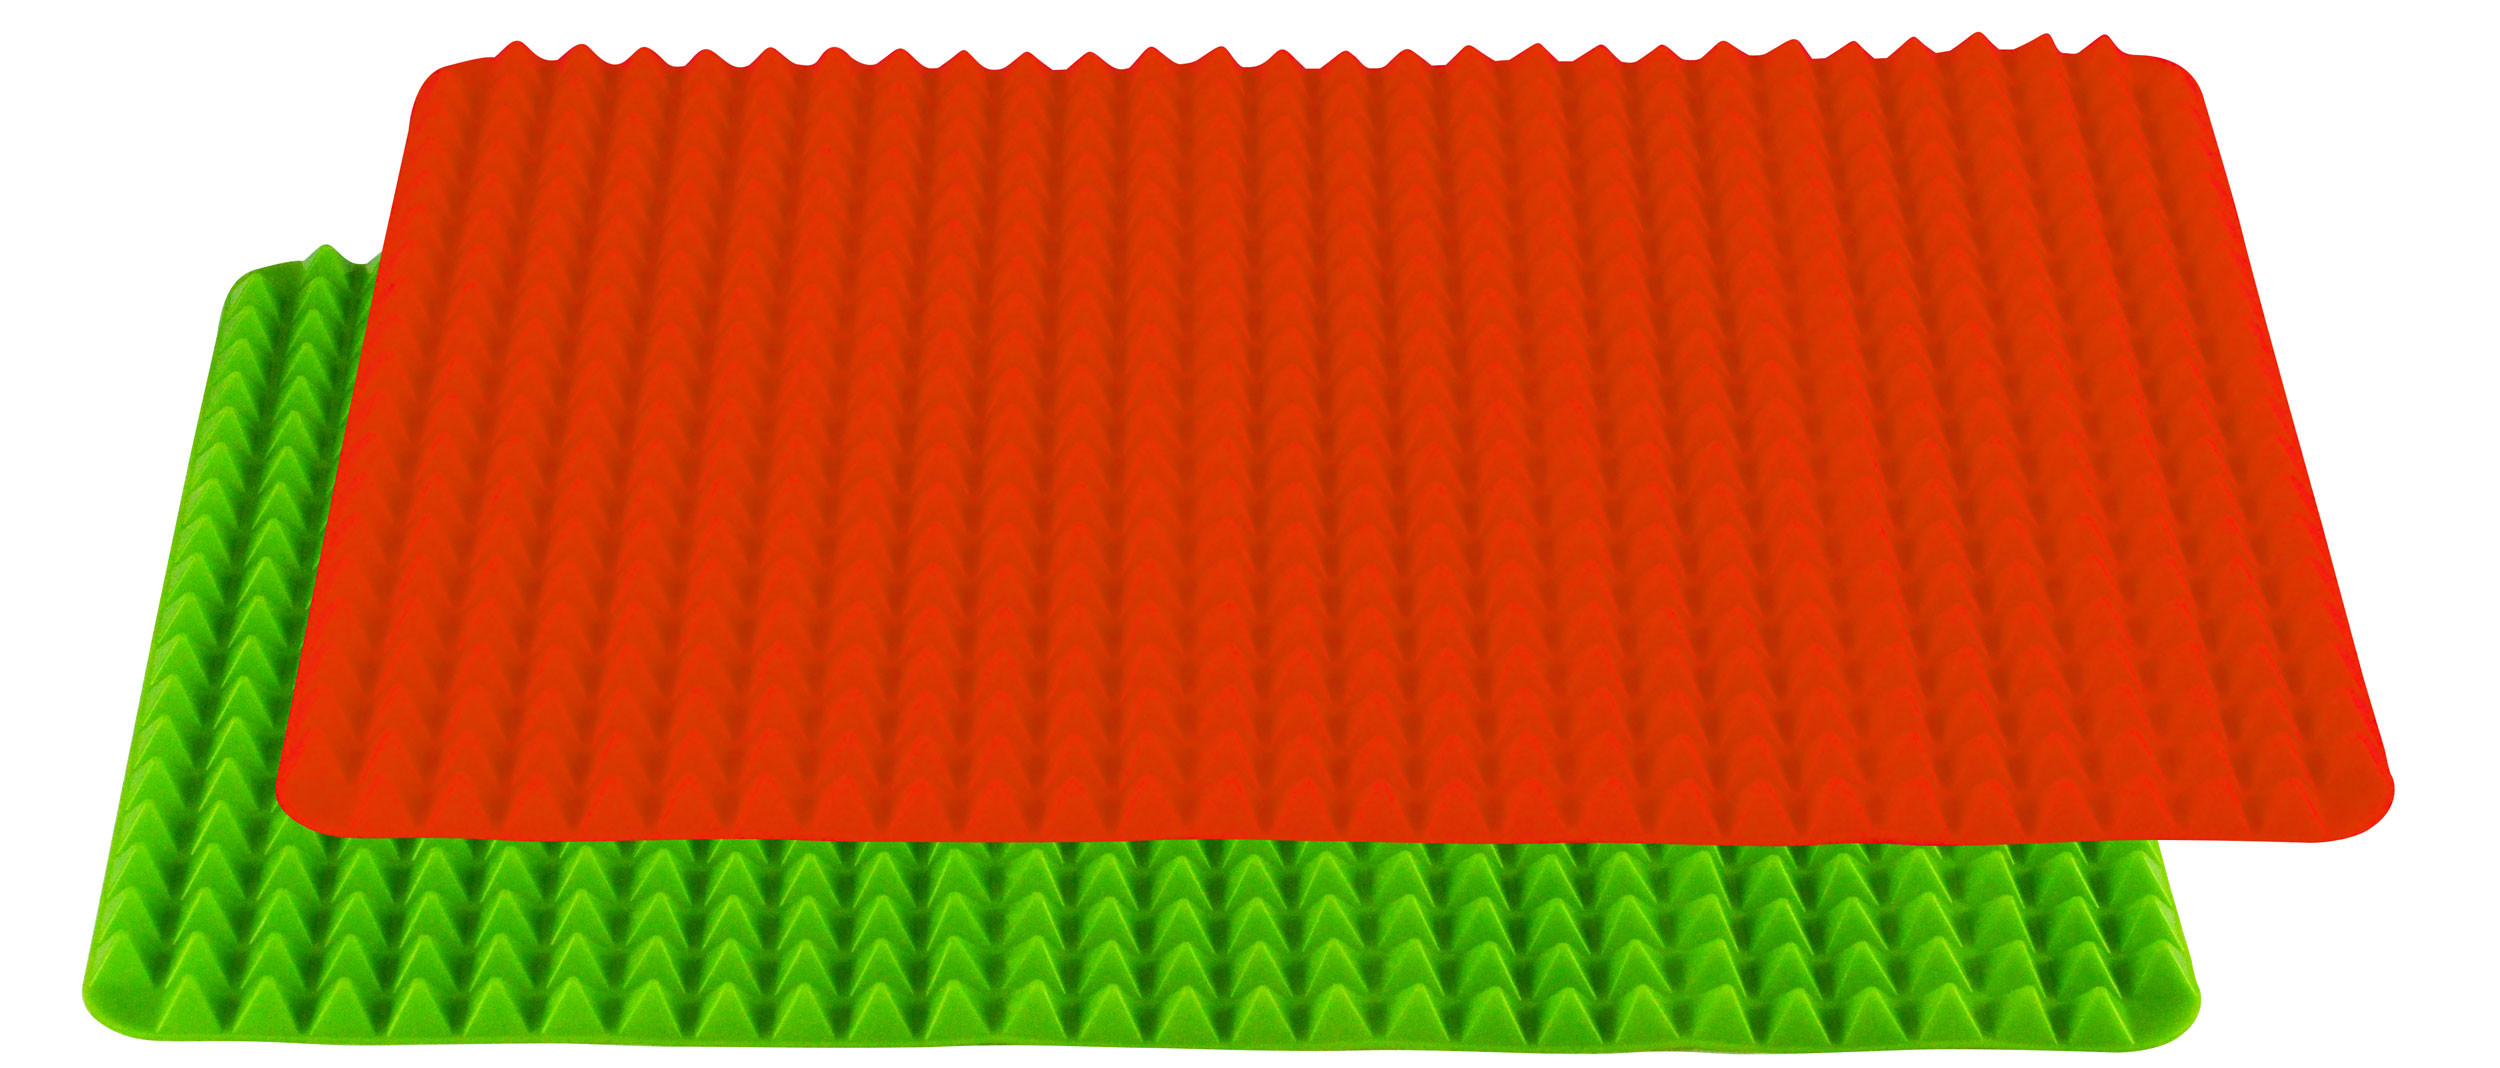 Healthy Homewares Silicone Baking Sheet, Red Green Set of 2